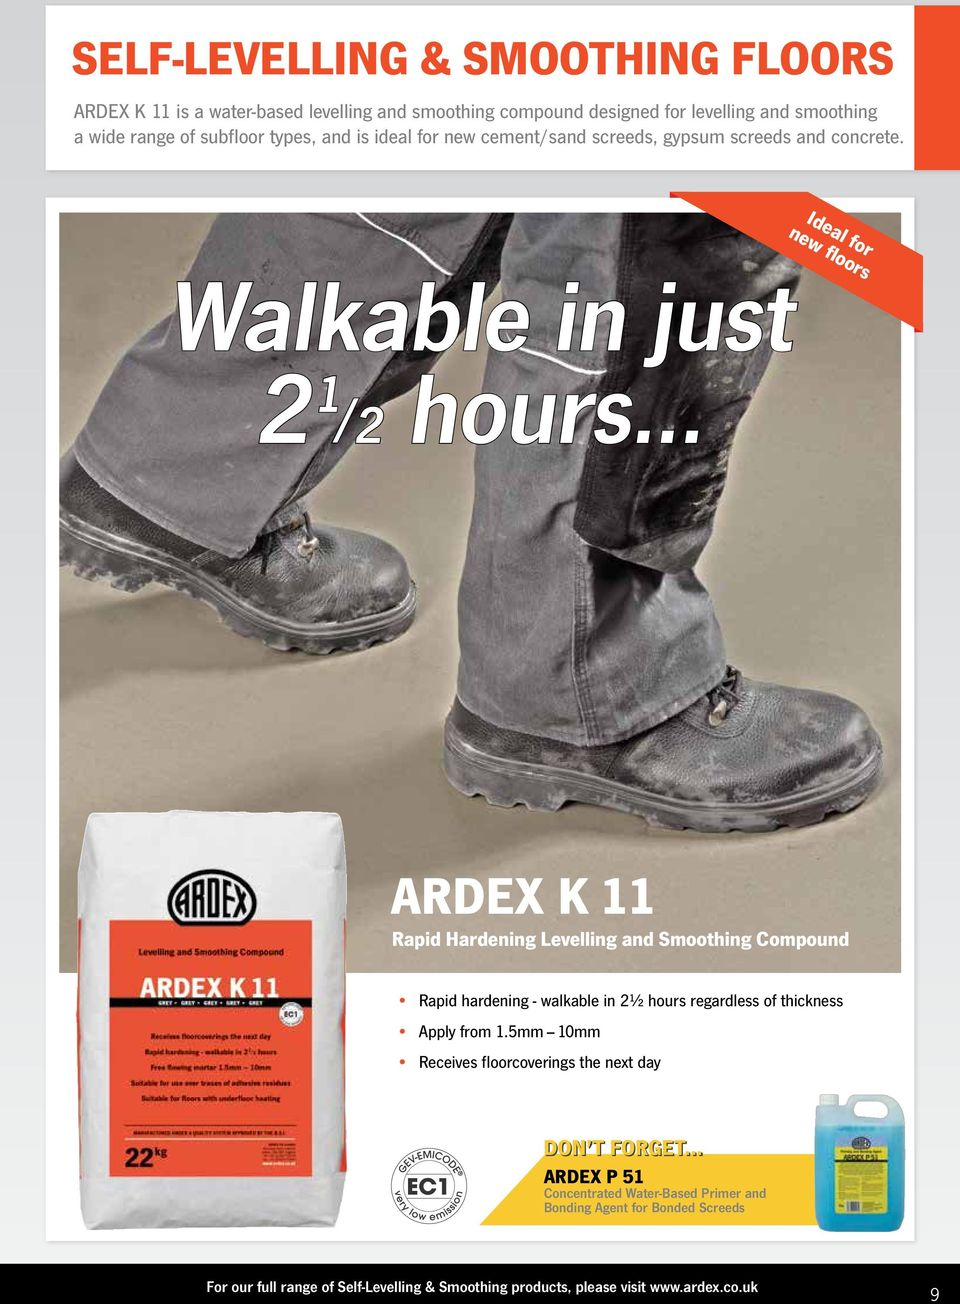 .. Ideal for new floors ARDEX K 11 Rapid Hardening Levelling and Smoothing Compound Rapid hardening - walkable in 2½ hours regardless of thickness Apply from 1.